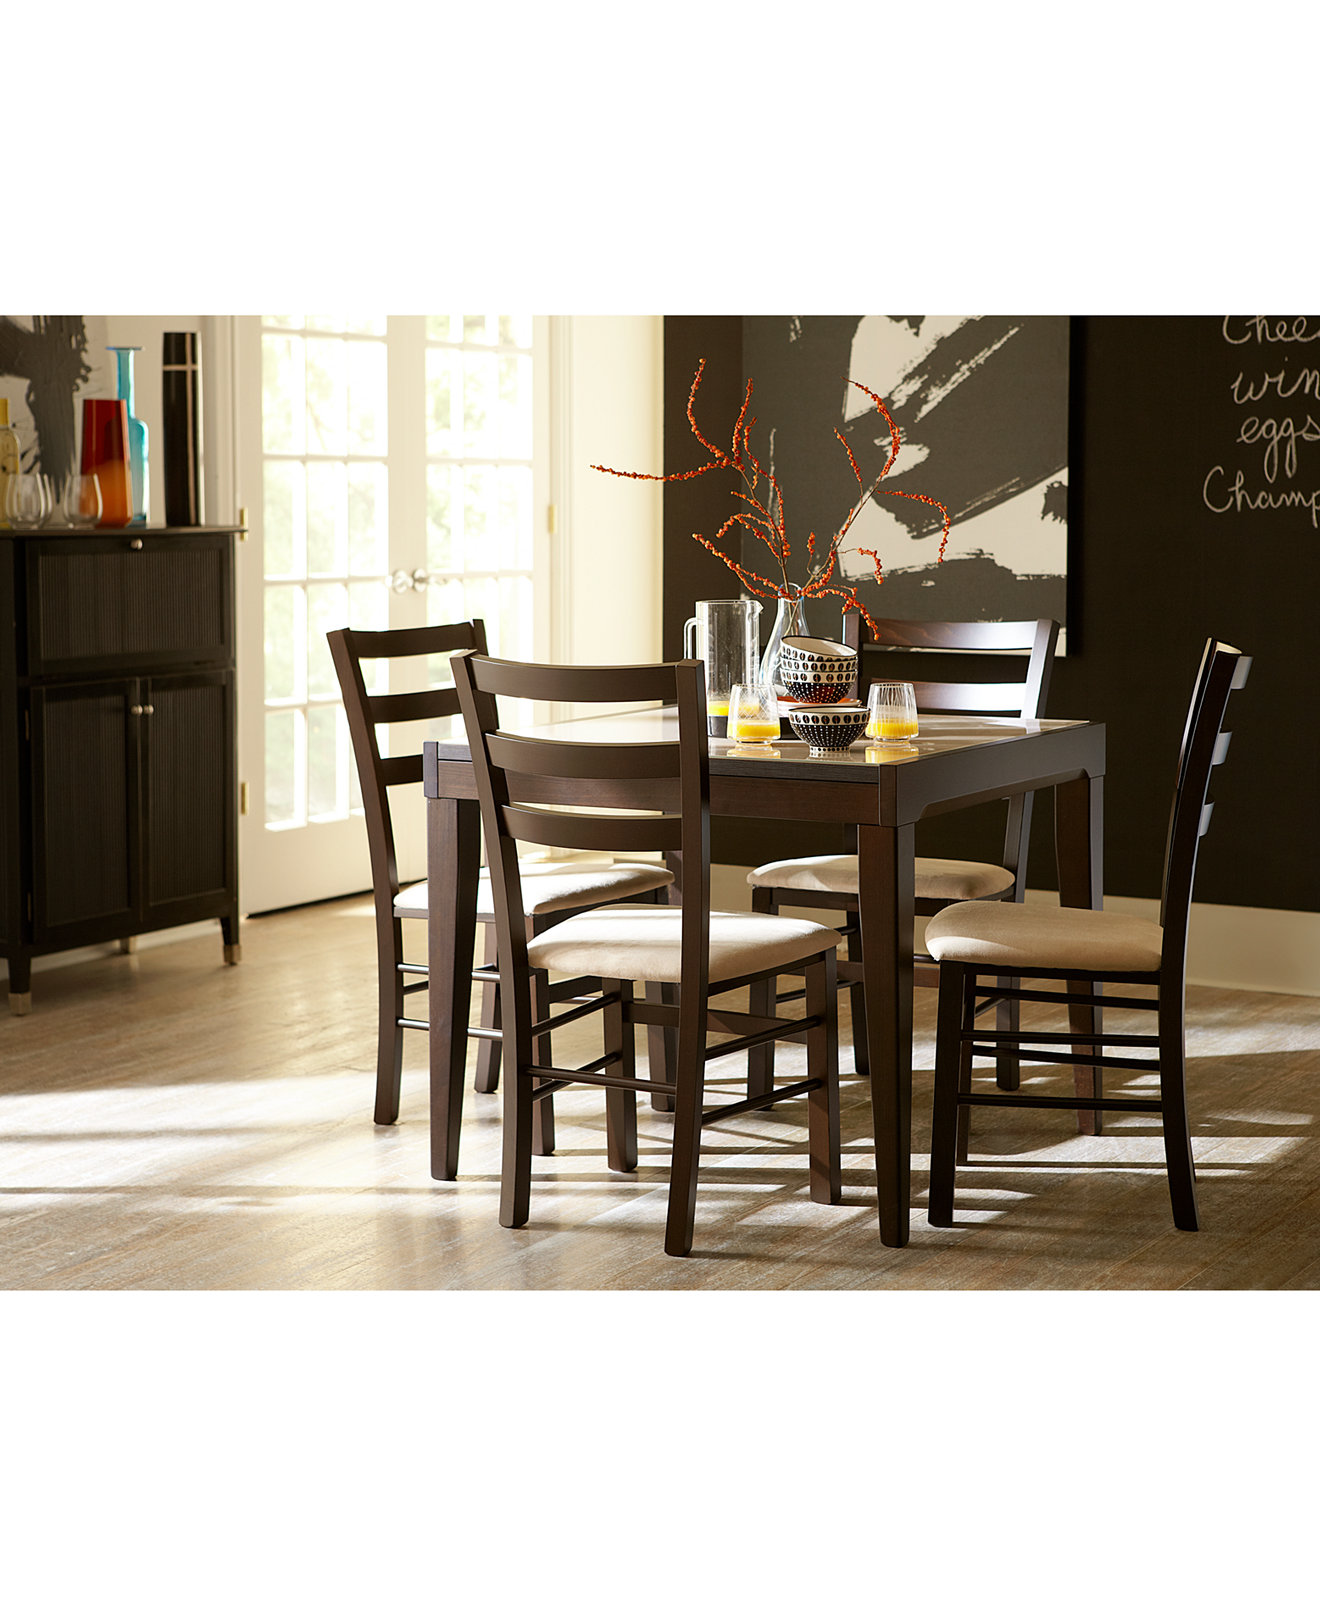 Dining room furniture macys rooms to go living